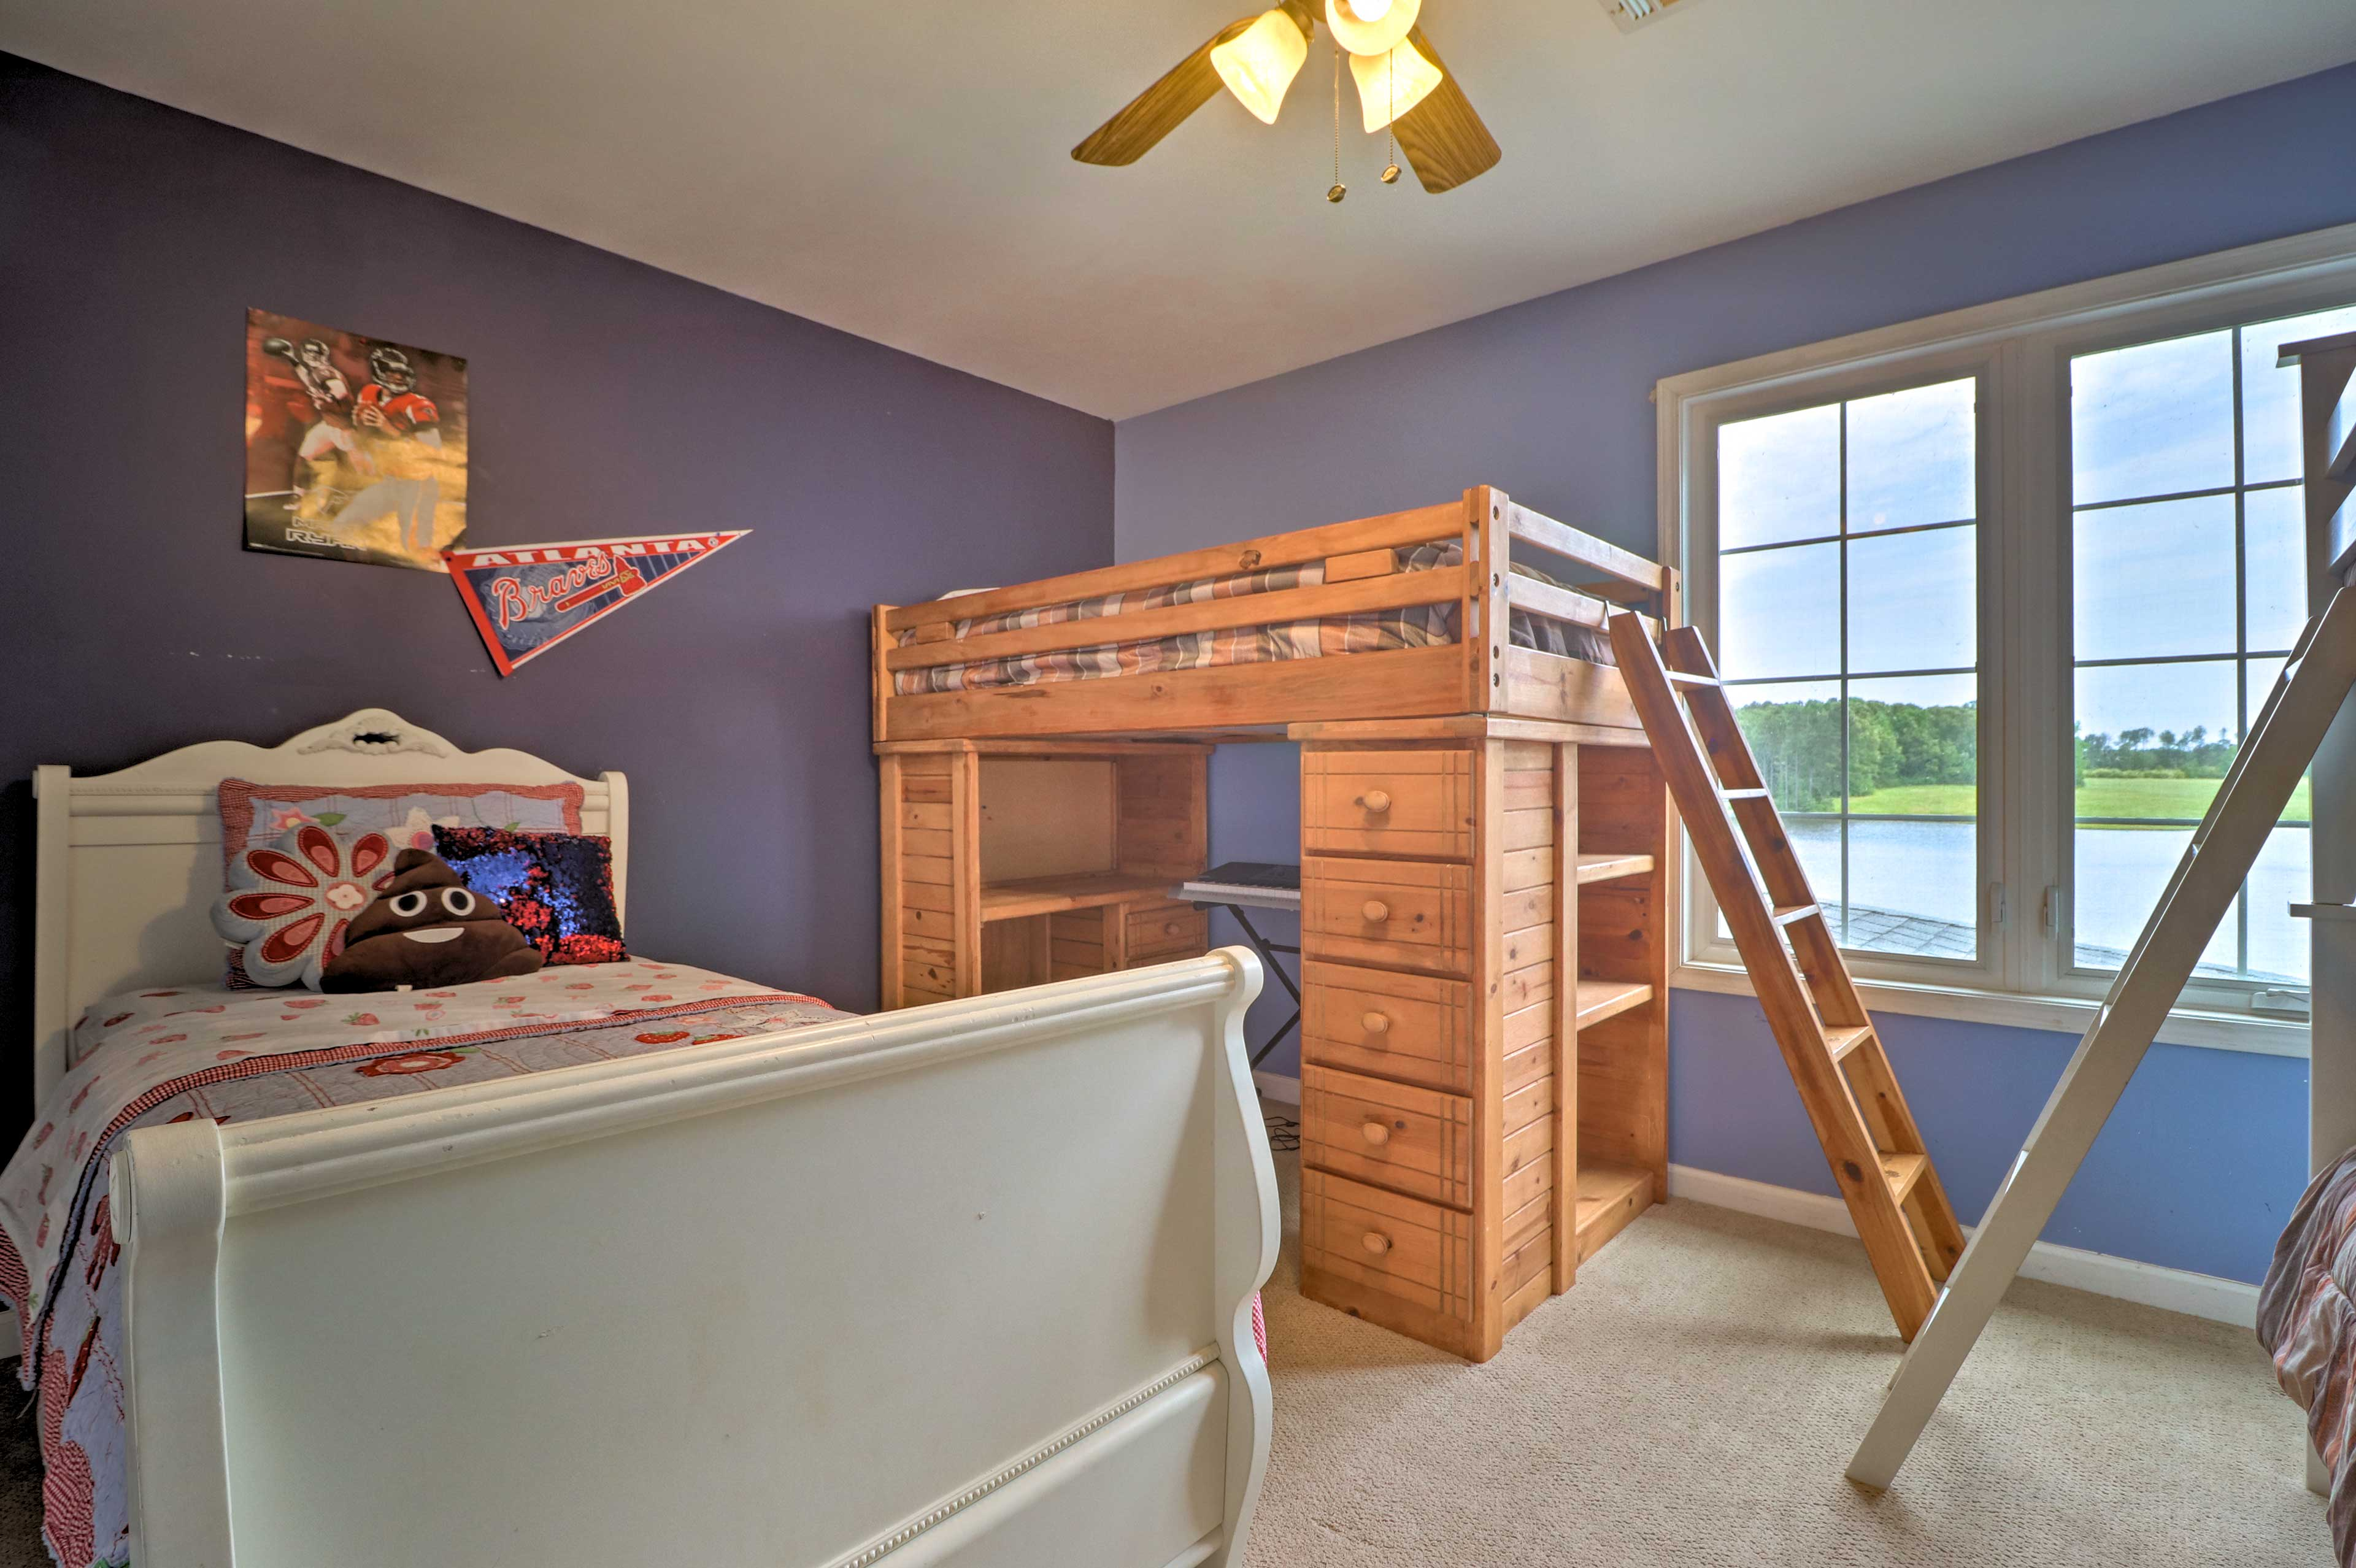 With ample sleeping arrangements, this bedroom is great for kids!